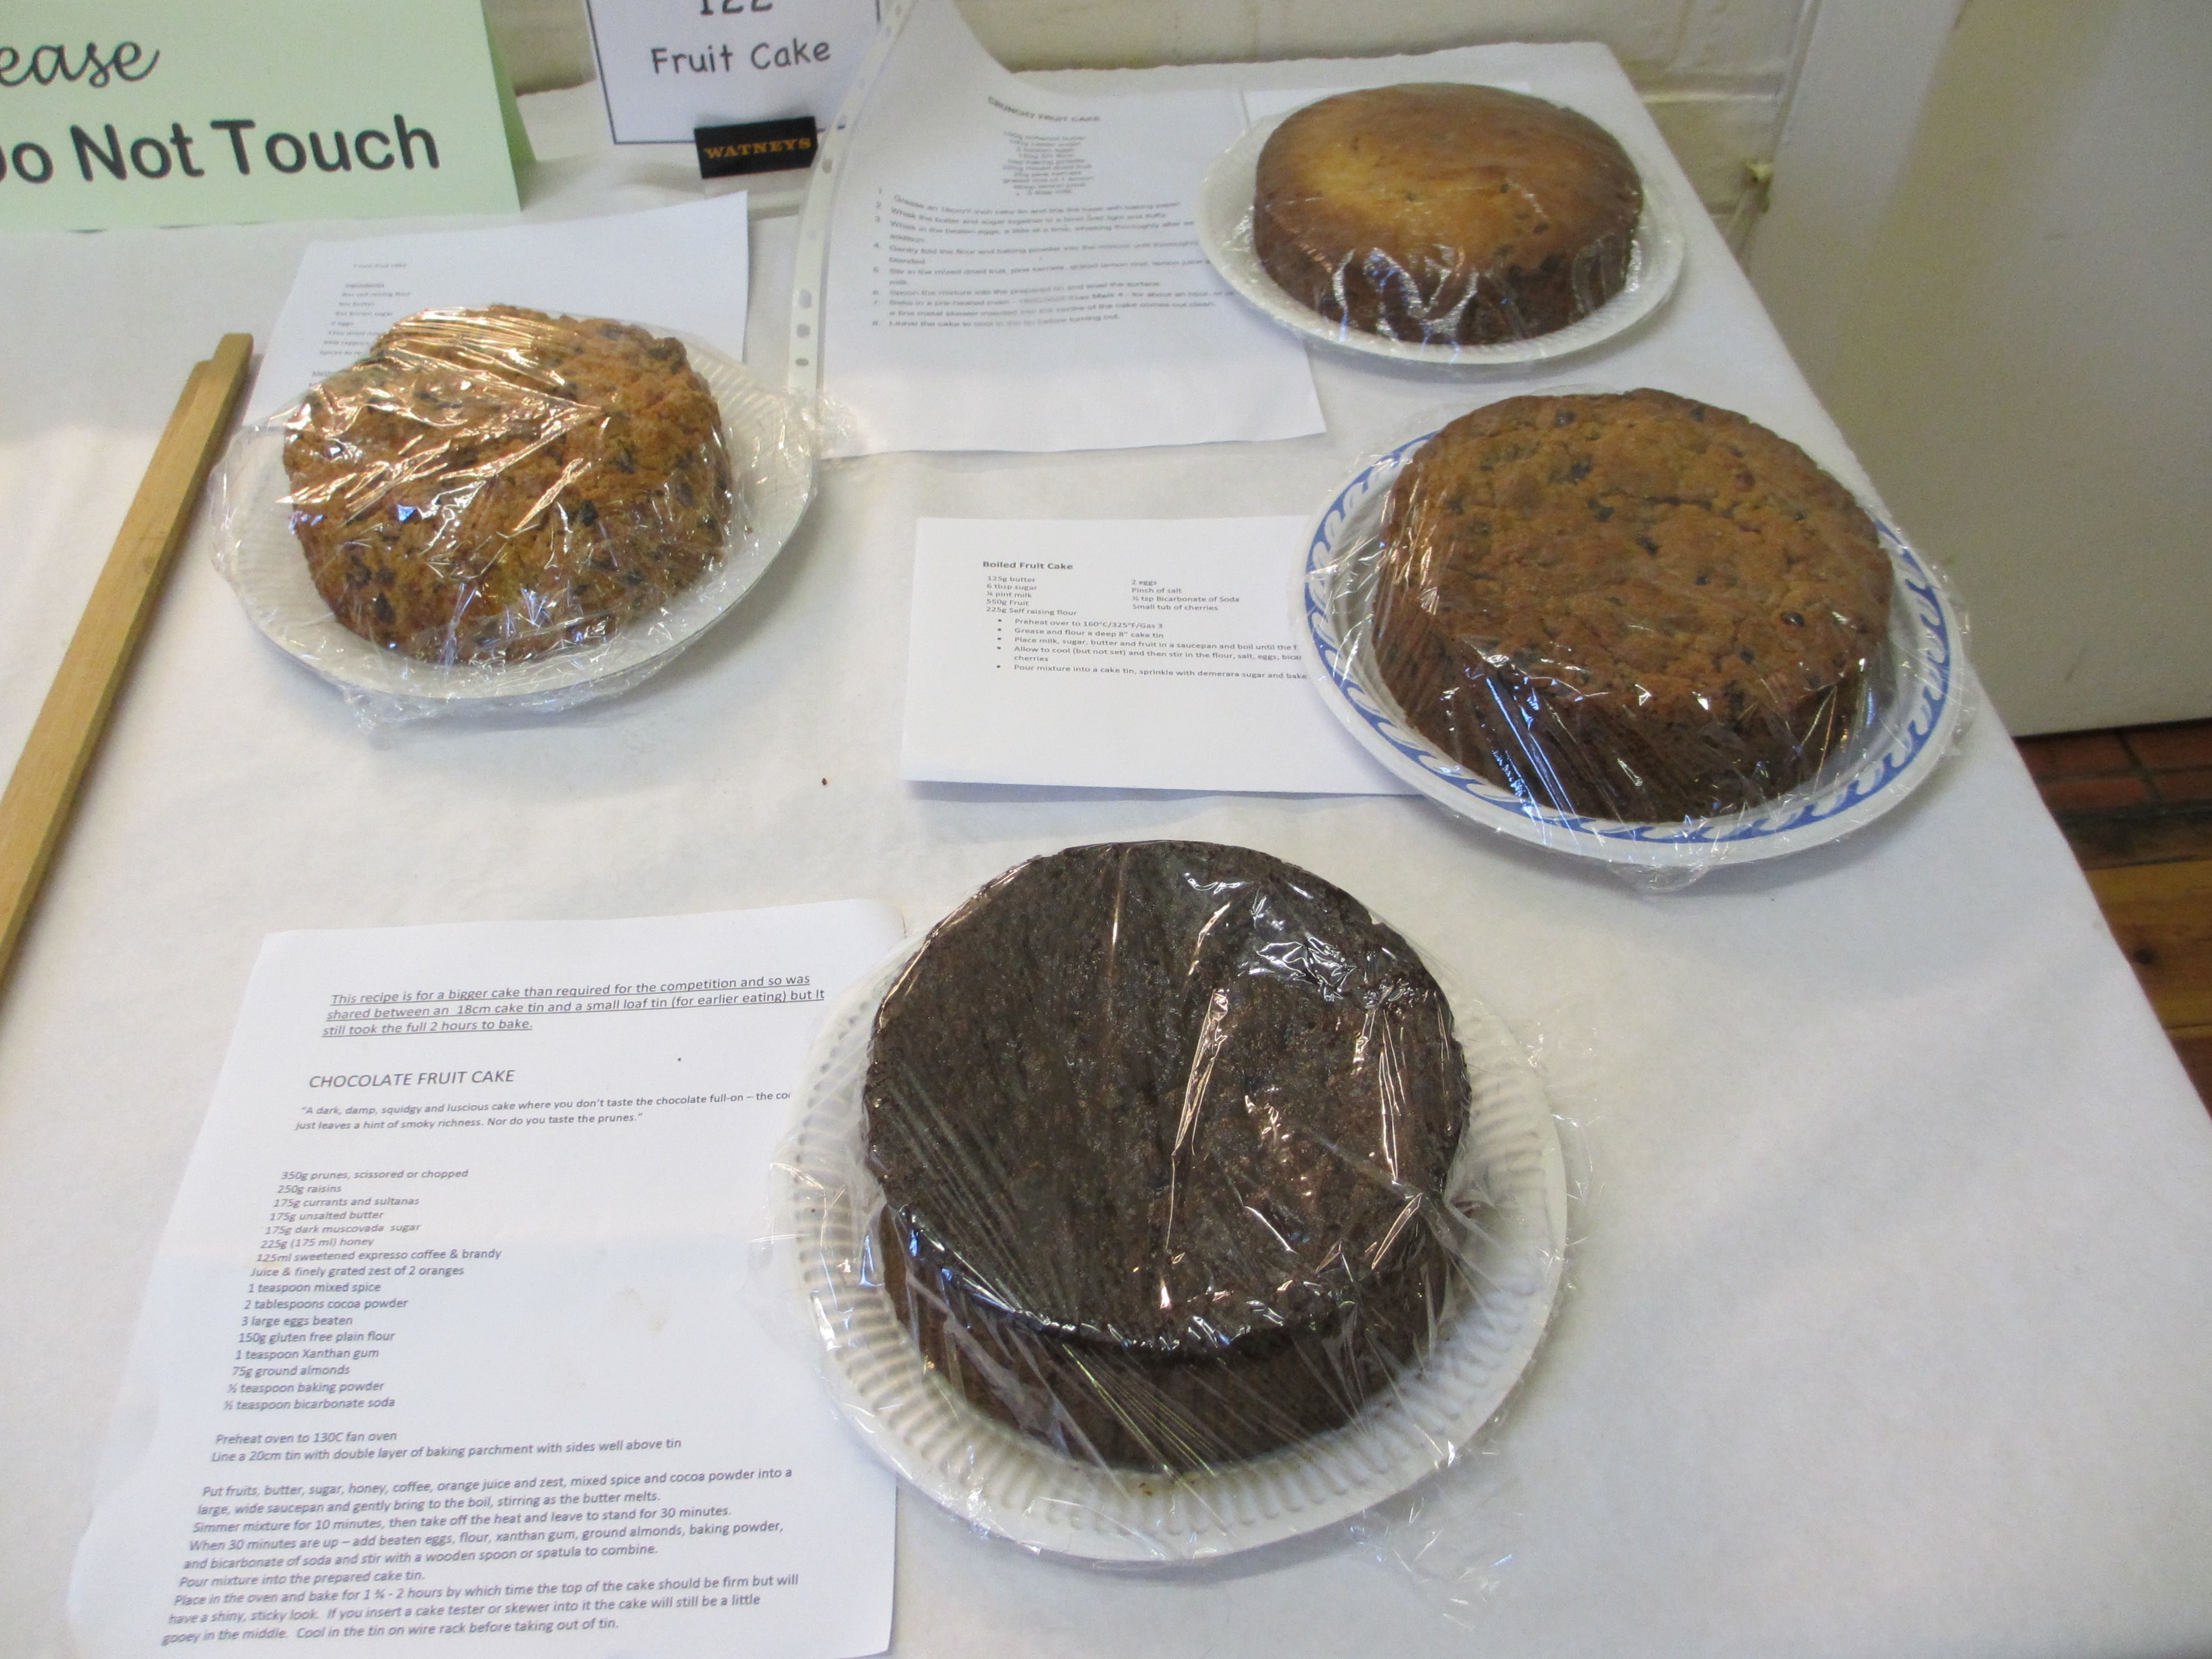 Fruit cake entries